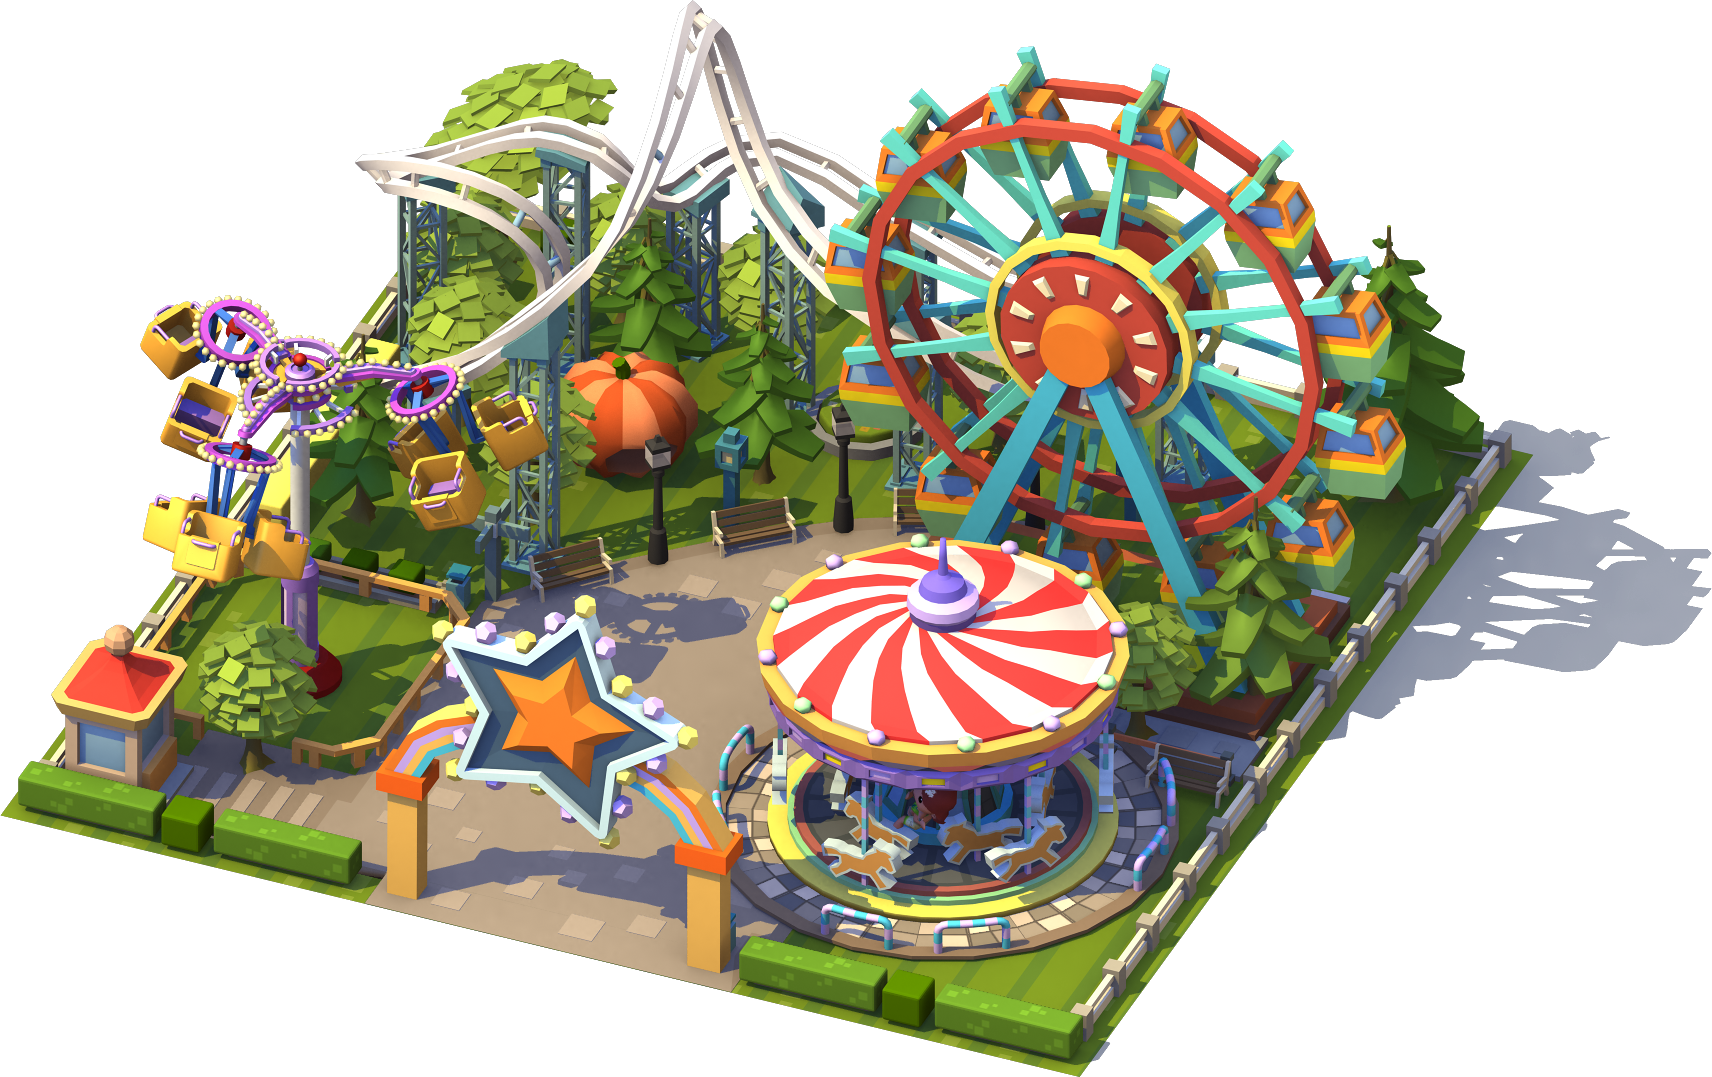 Sims Recreation Outdoor Play Equipment Social Simcity PNG Image